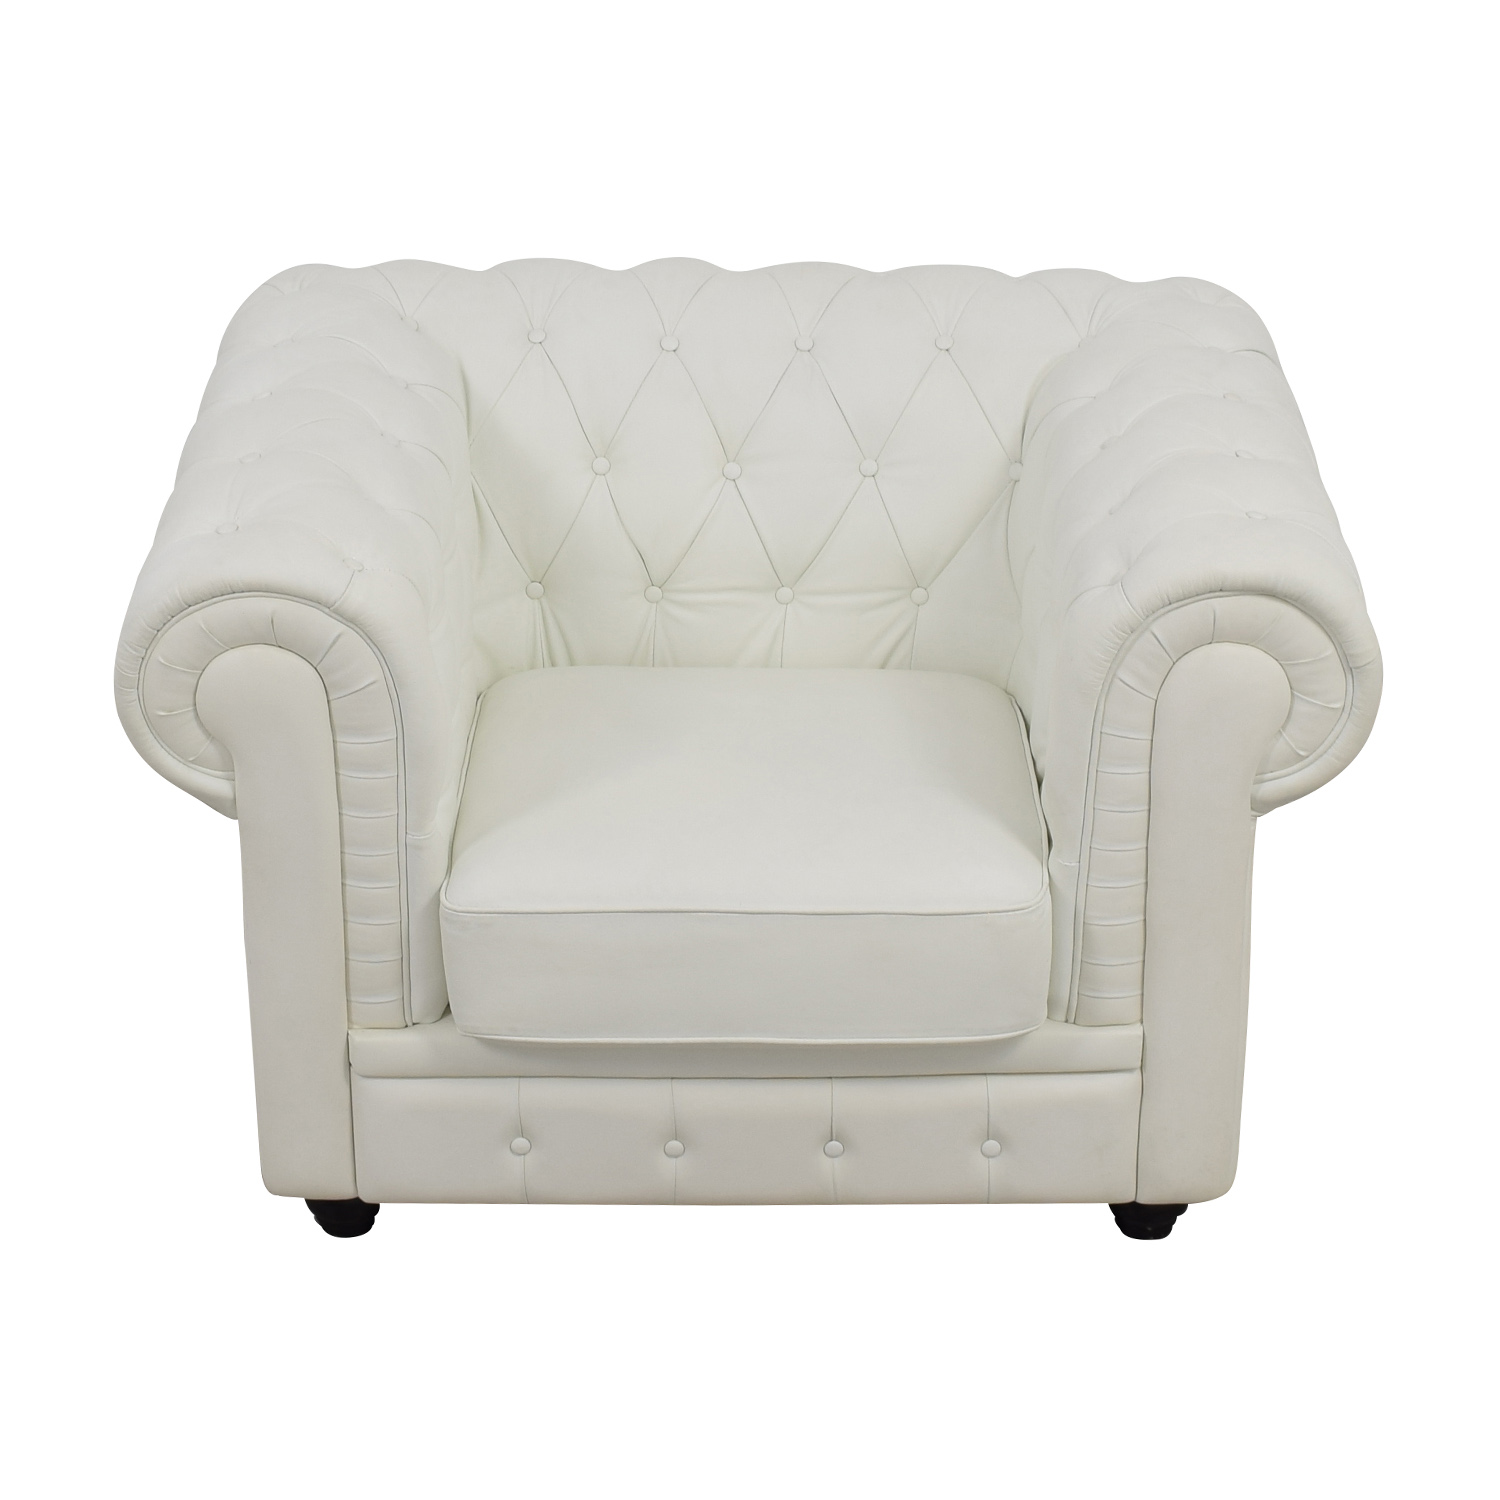 Chesterfield Tufted White Leather Accent Chair on sale